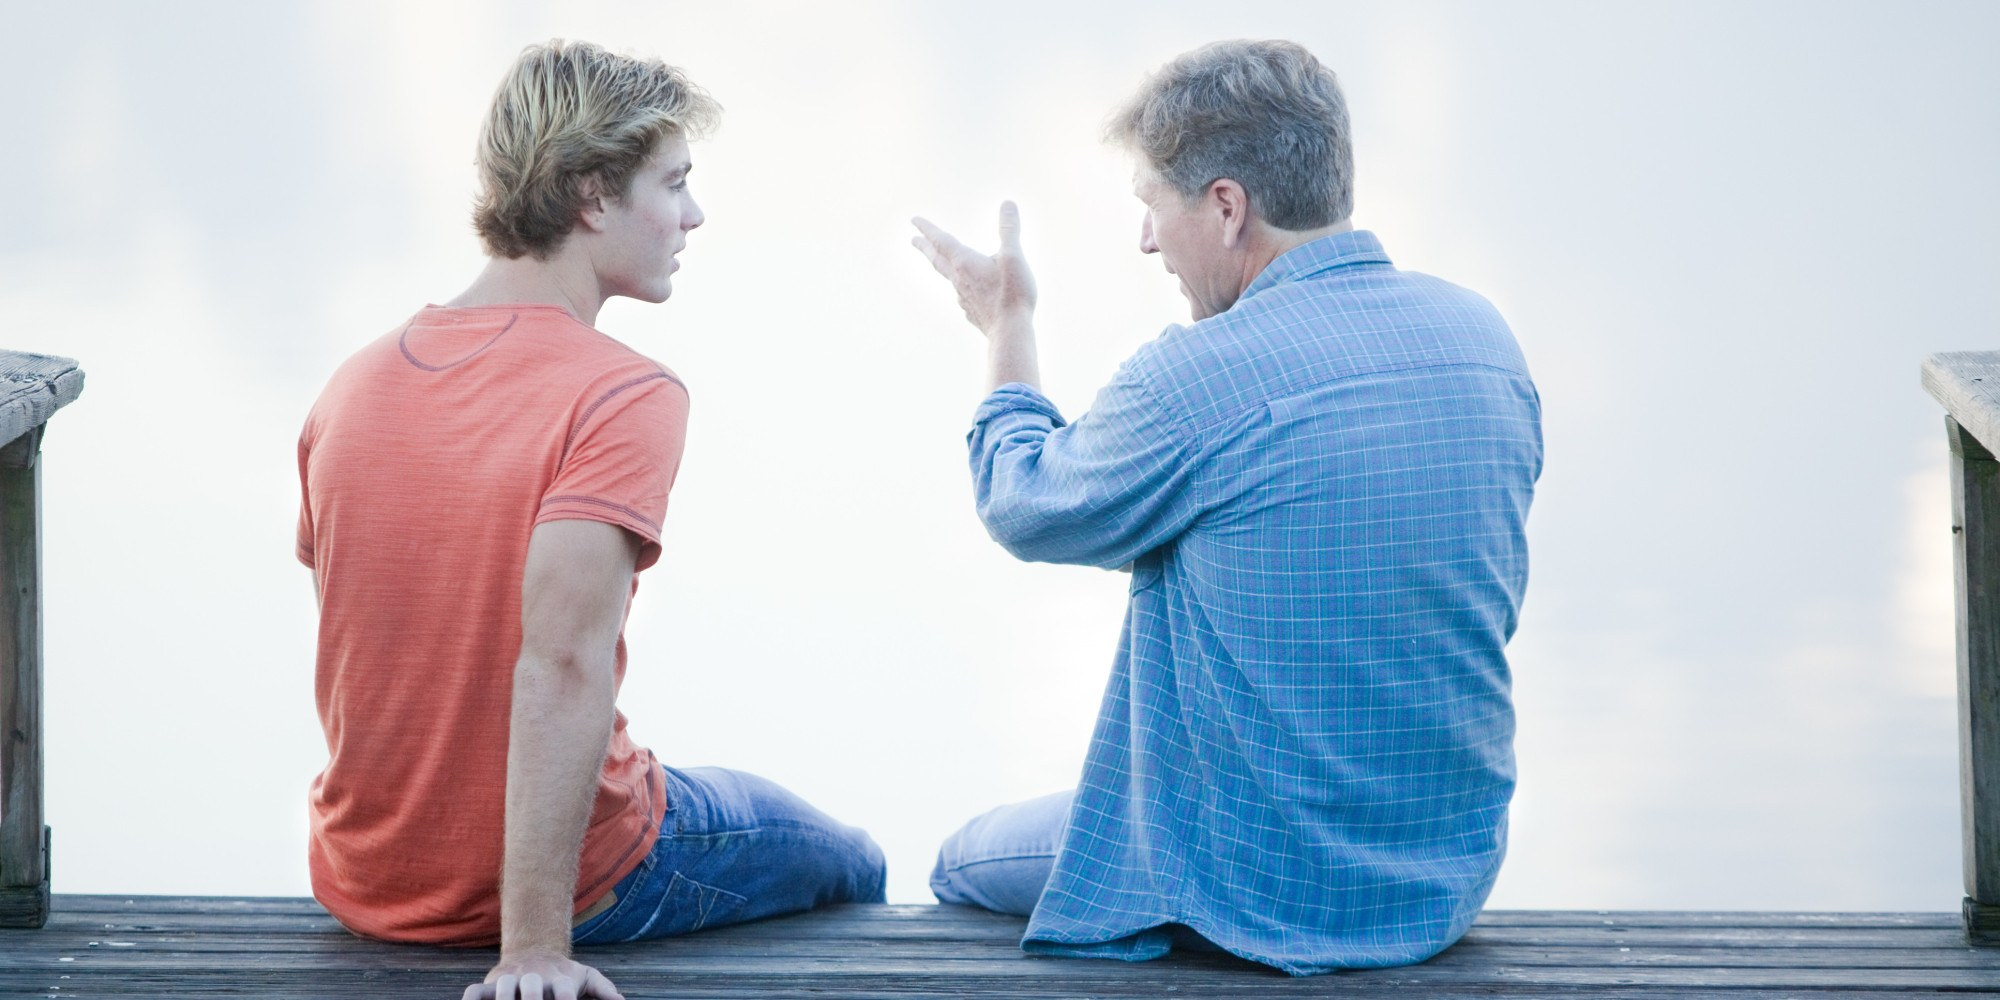 Modern Day, https://www.modernday.org/fathers-gifts-sons/o-talking-to-teen-son-facebook/